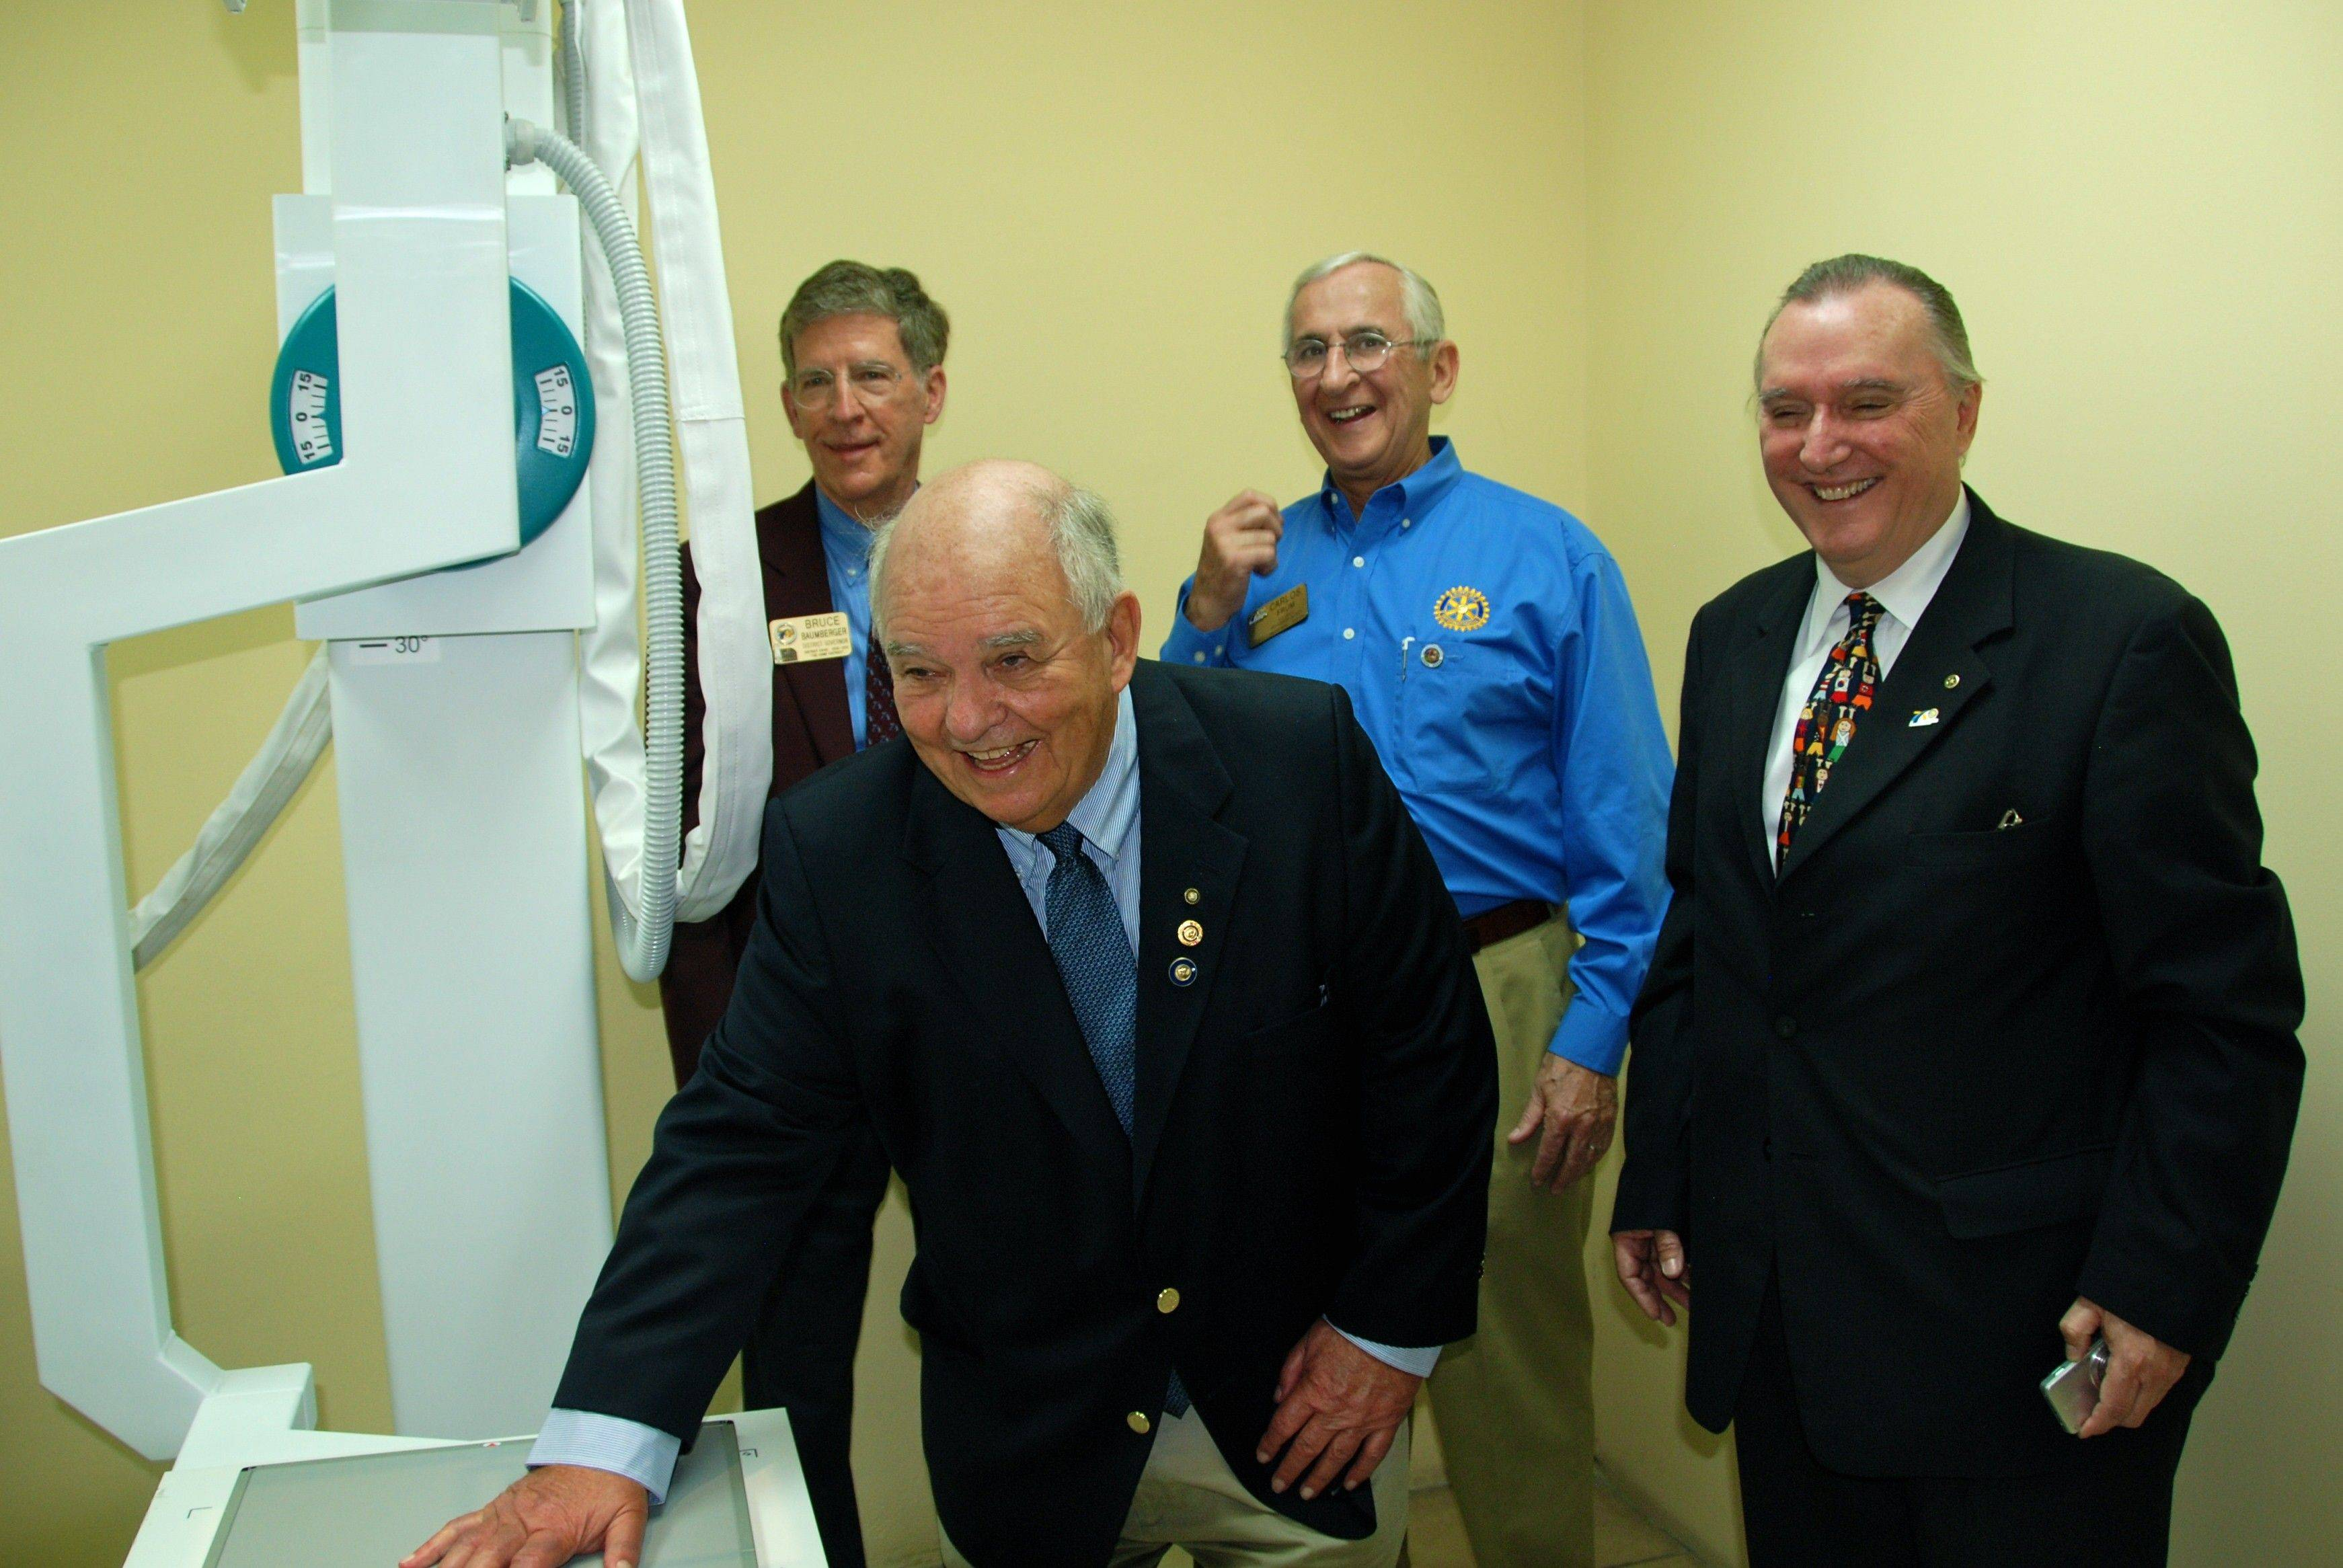 In Guatemala City, John Vanden Brink demonstrates how X-ray diagnostic equipment will serve Guatemalans in remote regions. Behind him are Bruce Baumberger and Carlos Frum, Rotary District Governor and District Governor-elect, respectively, of northeastern Illinois-based Rotary International District 6440; and Jorge Aufranc, Past District Governor of Rotary International District 4250.